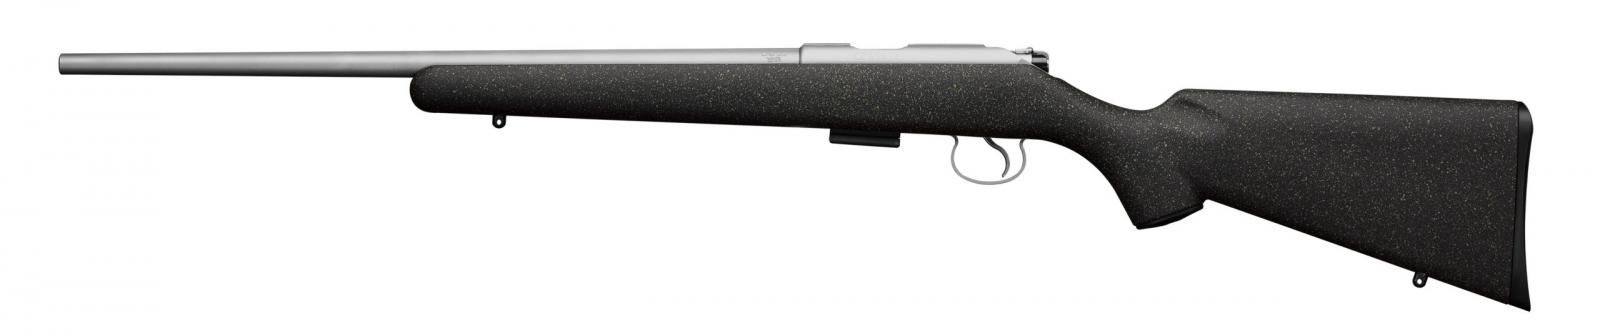 Carabine CZ 455 STAINLESS